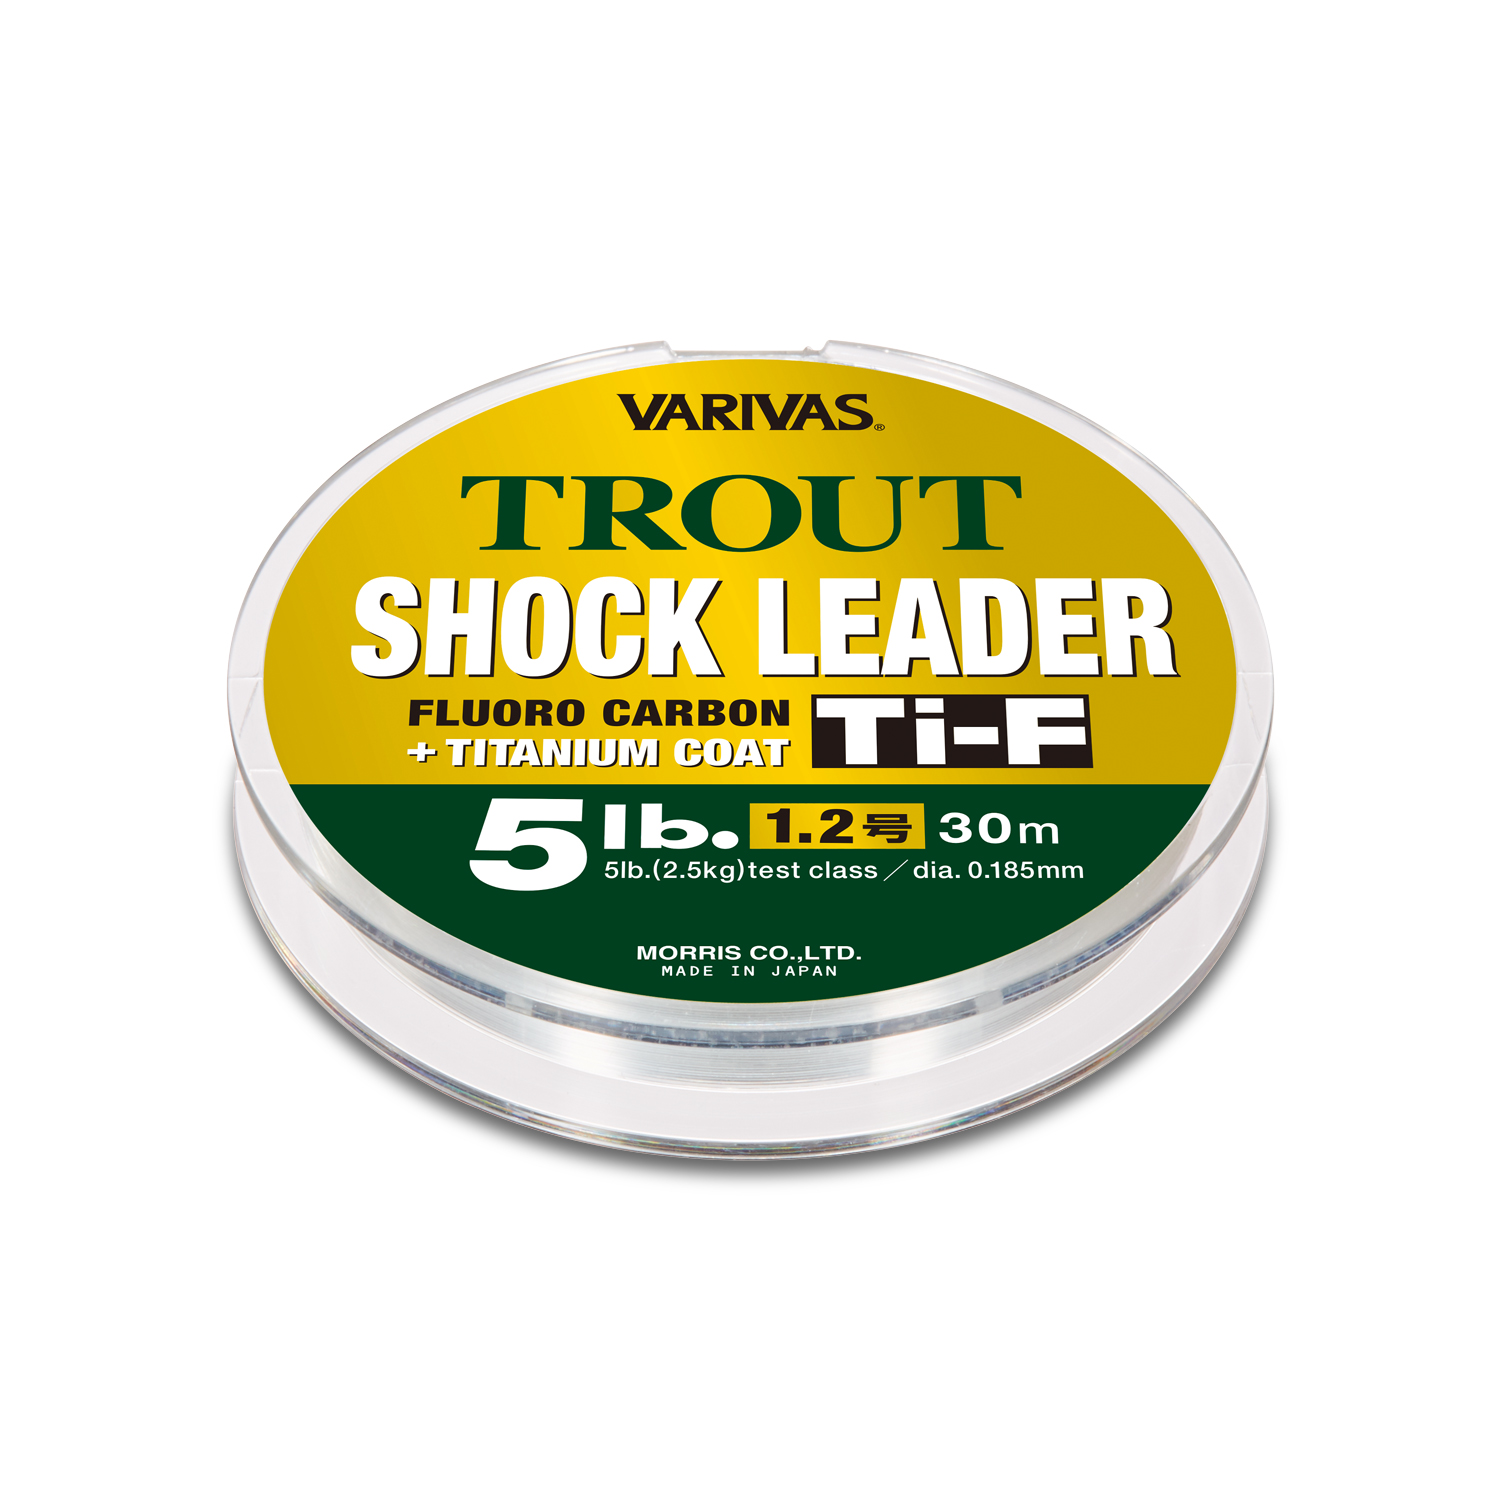 Trout Shock Leader[Ti Fluoro Carbon]